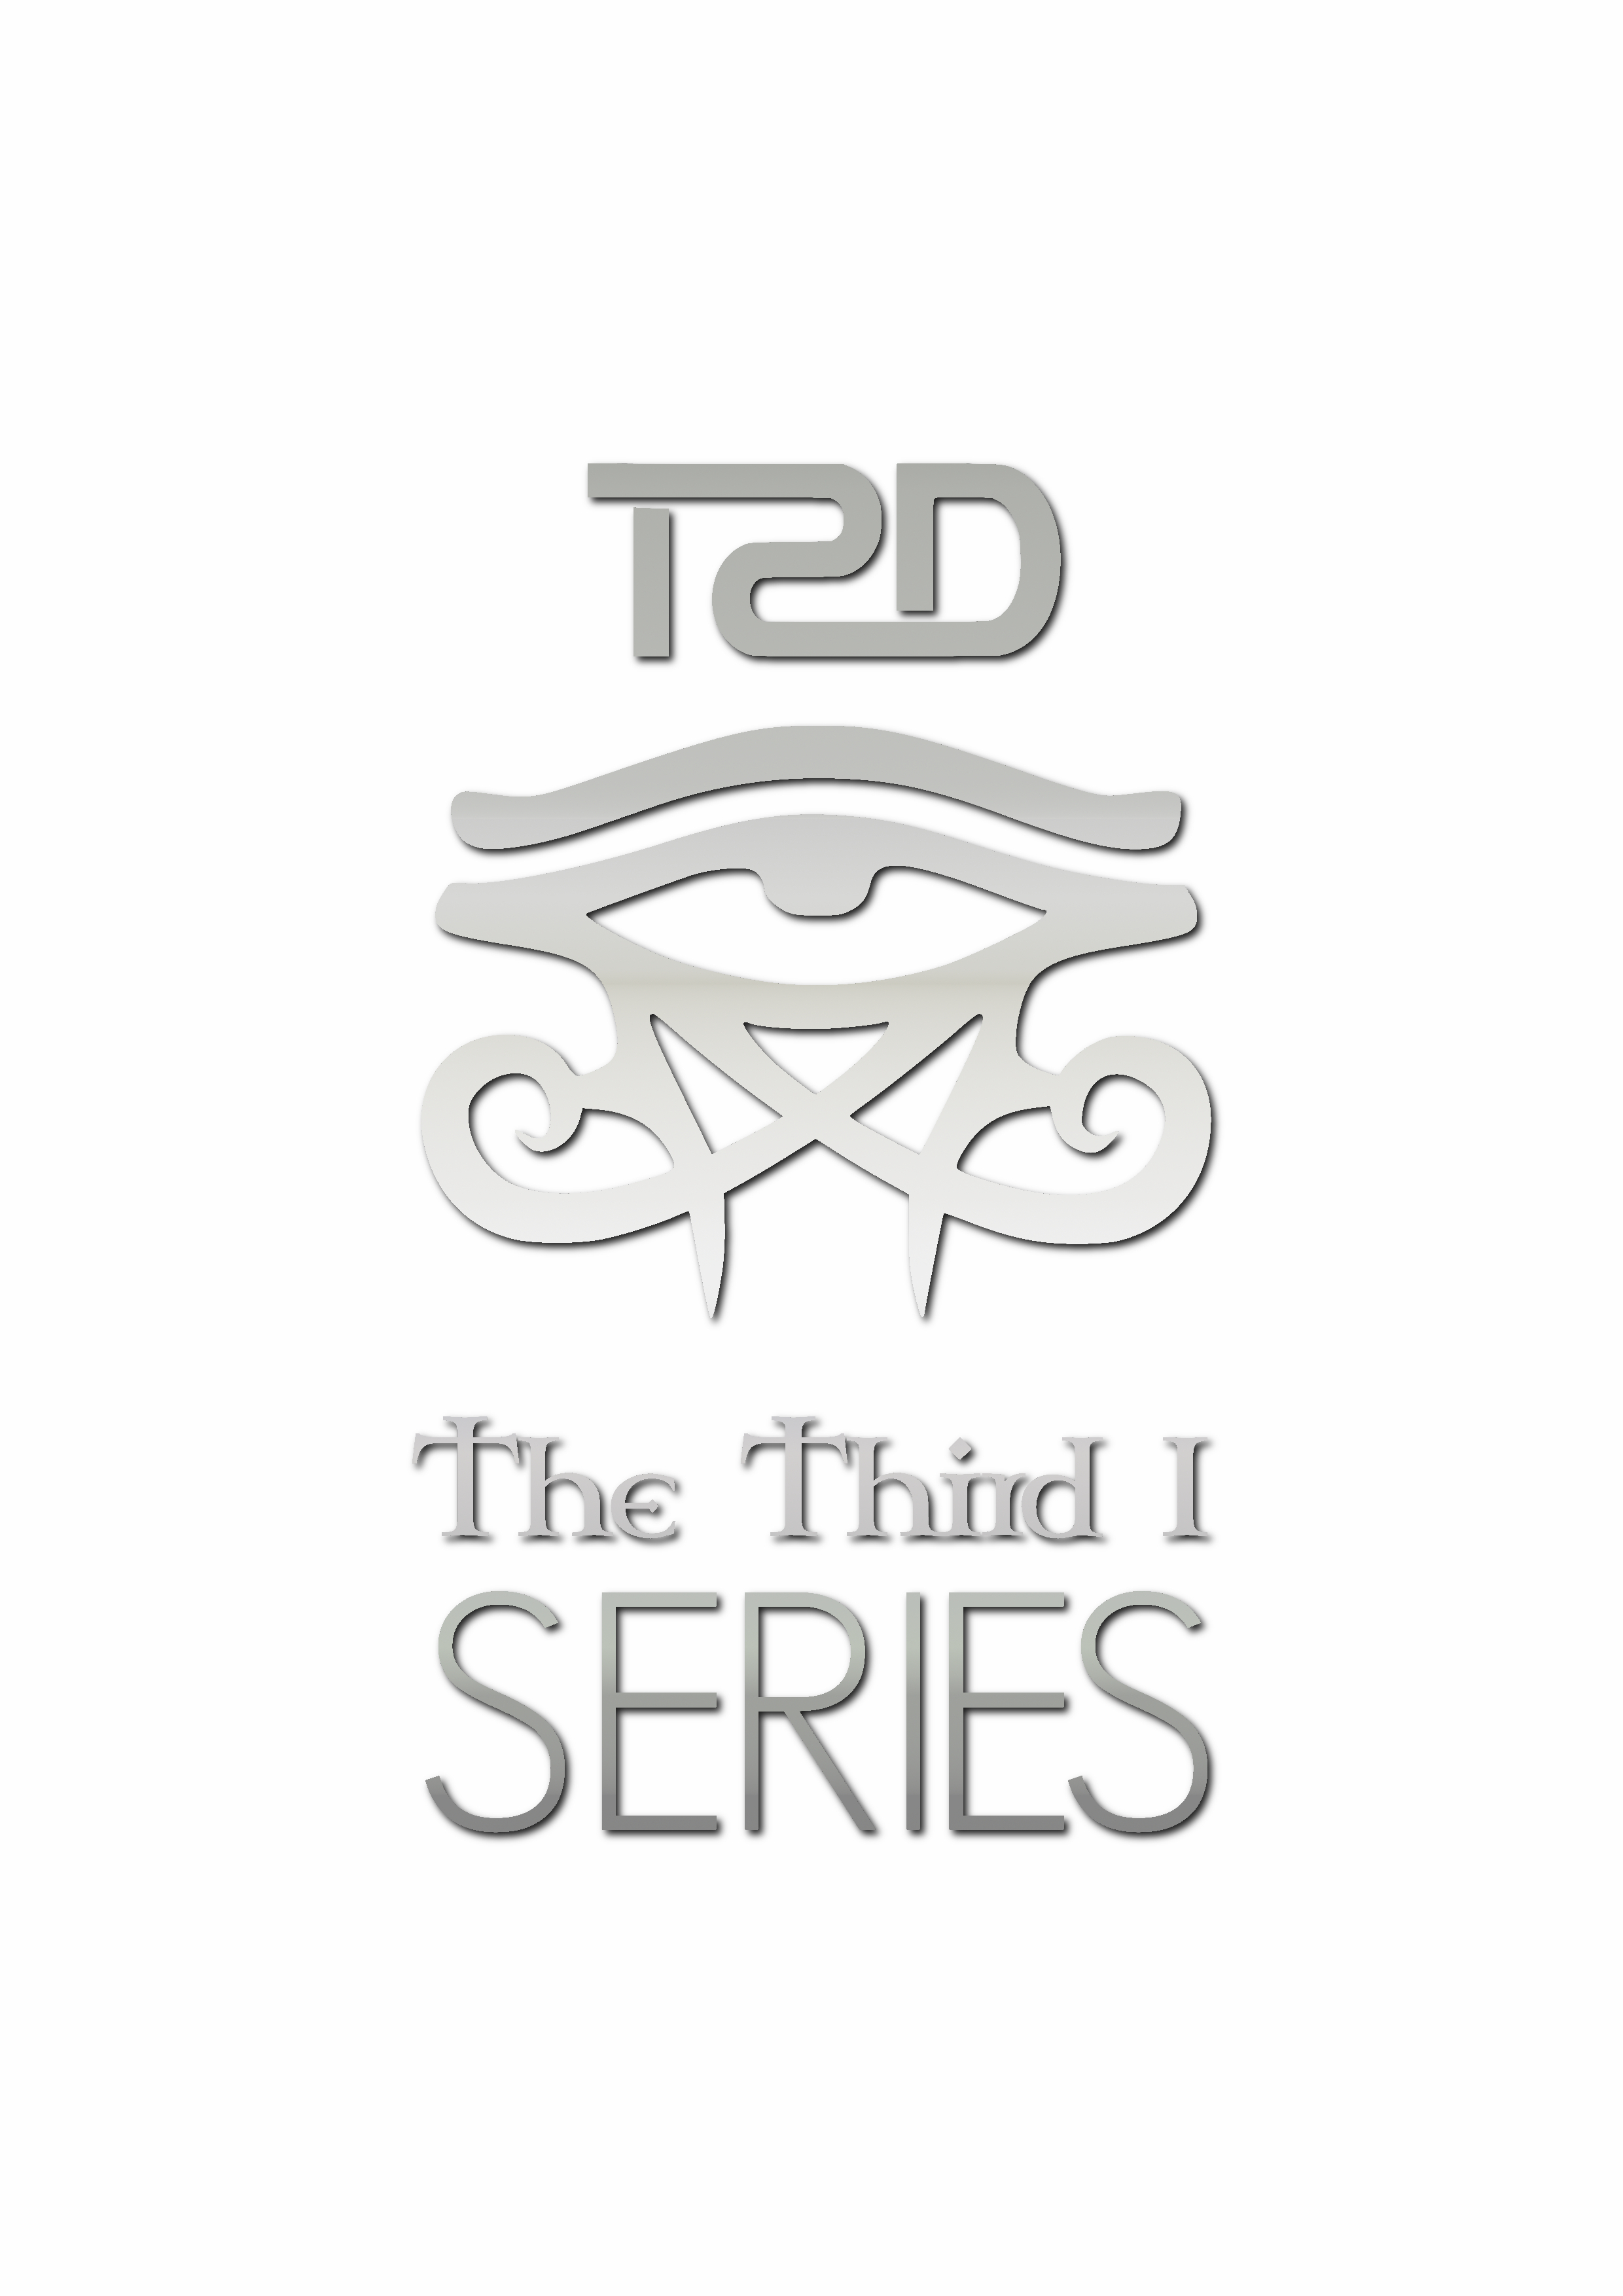 TSD-MW_-_SERIES_-_The_Third_I